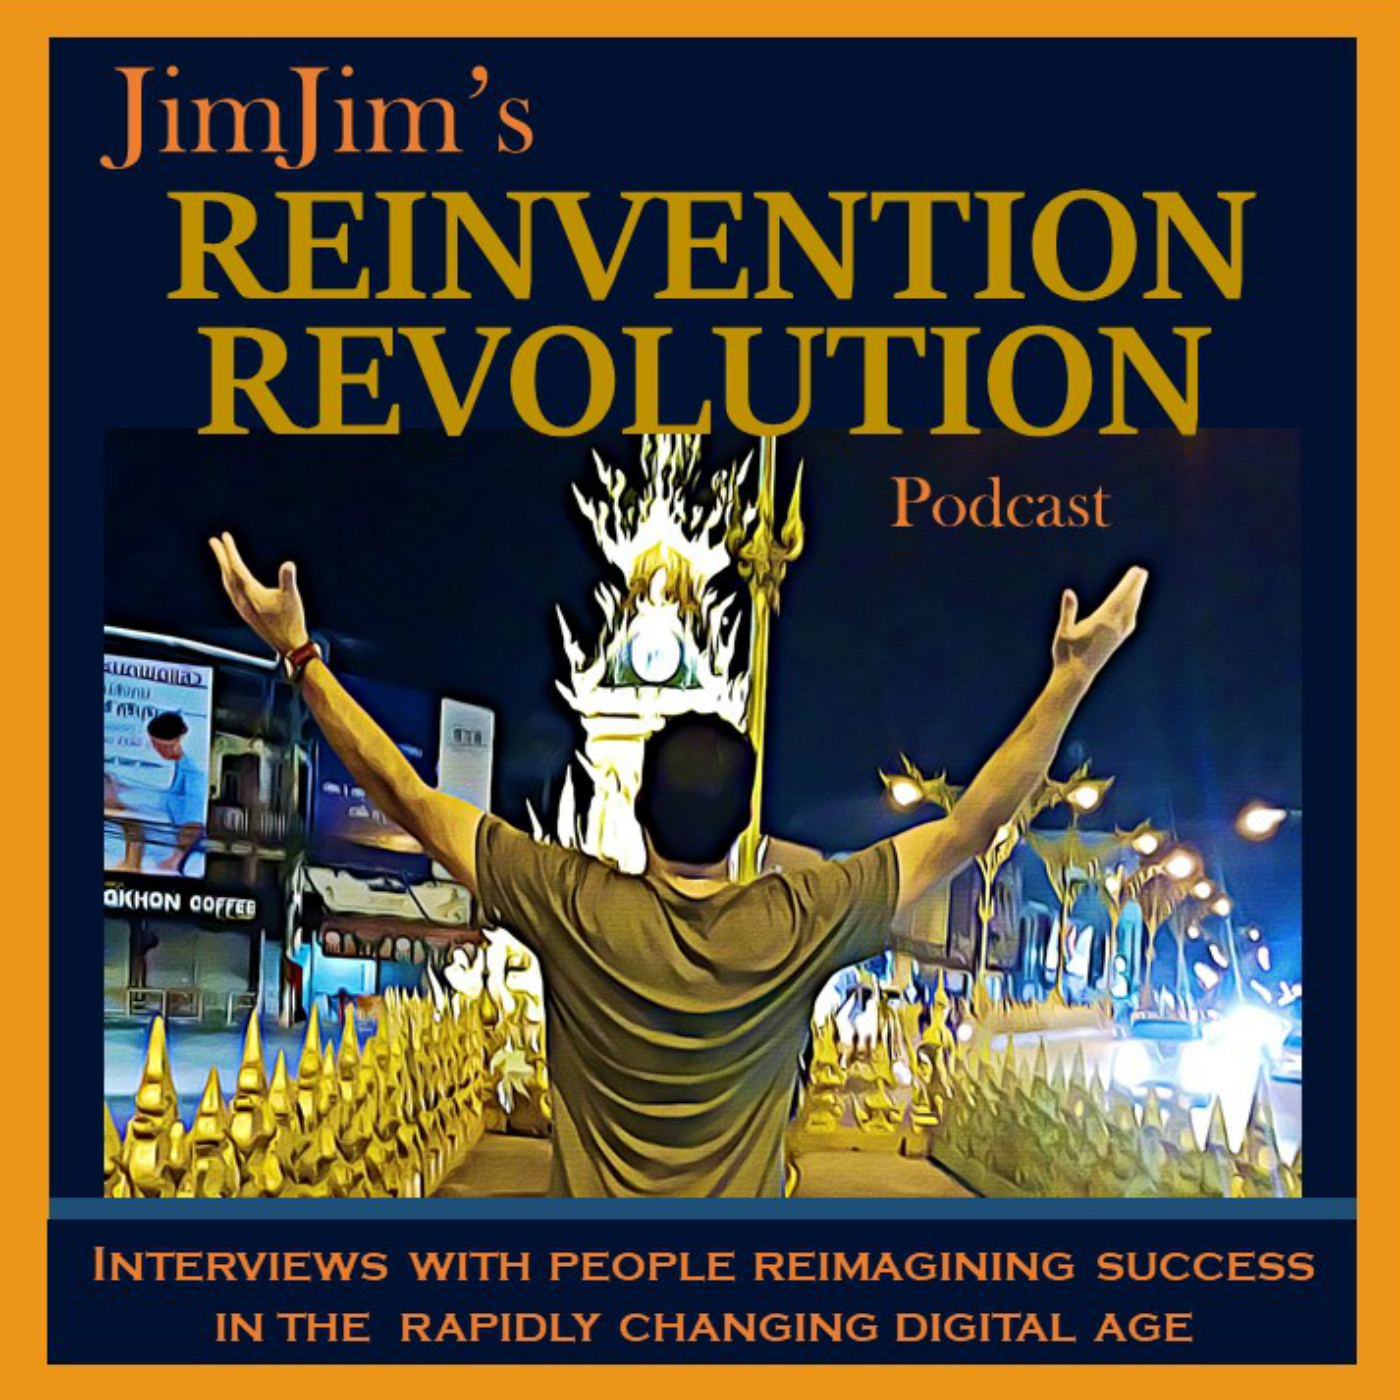 JimJim's Reinvention Revolution Podcast show art